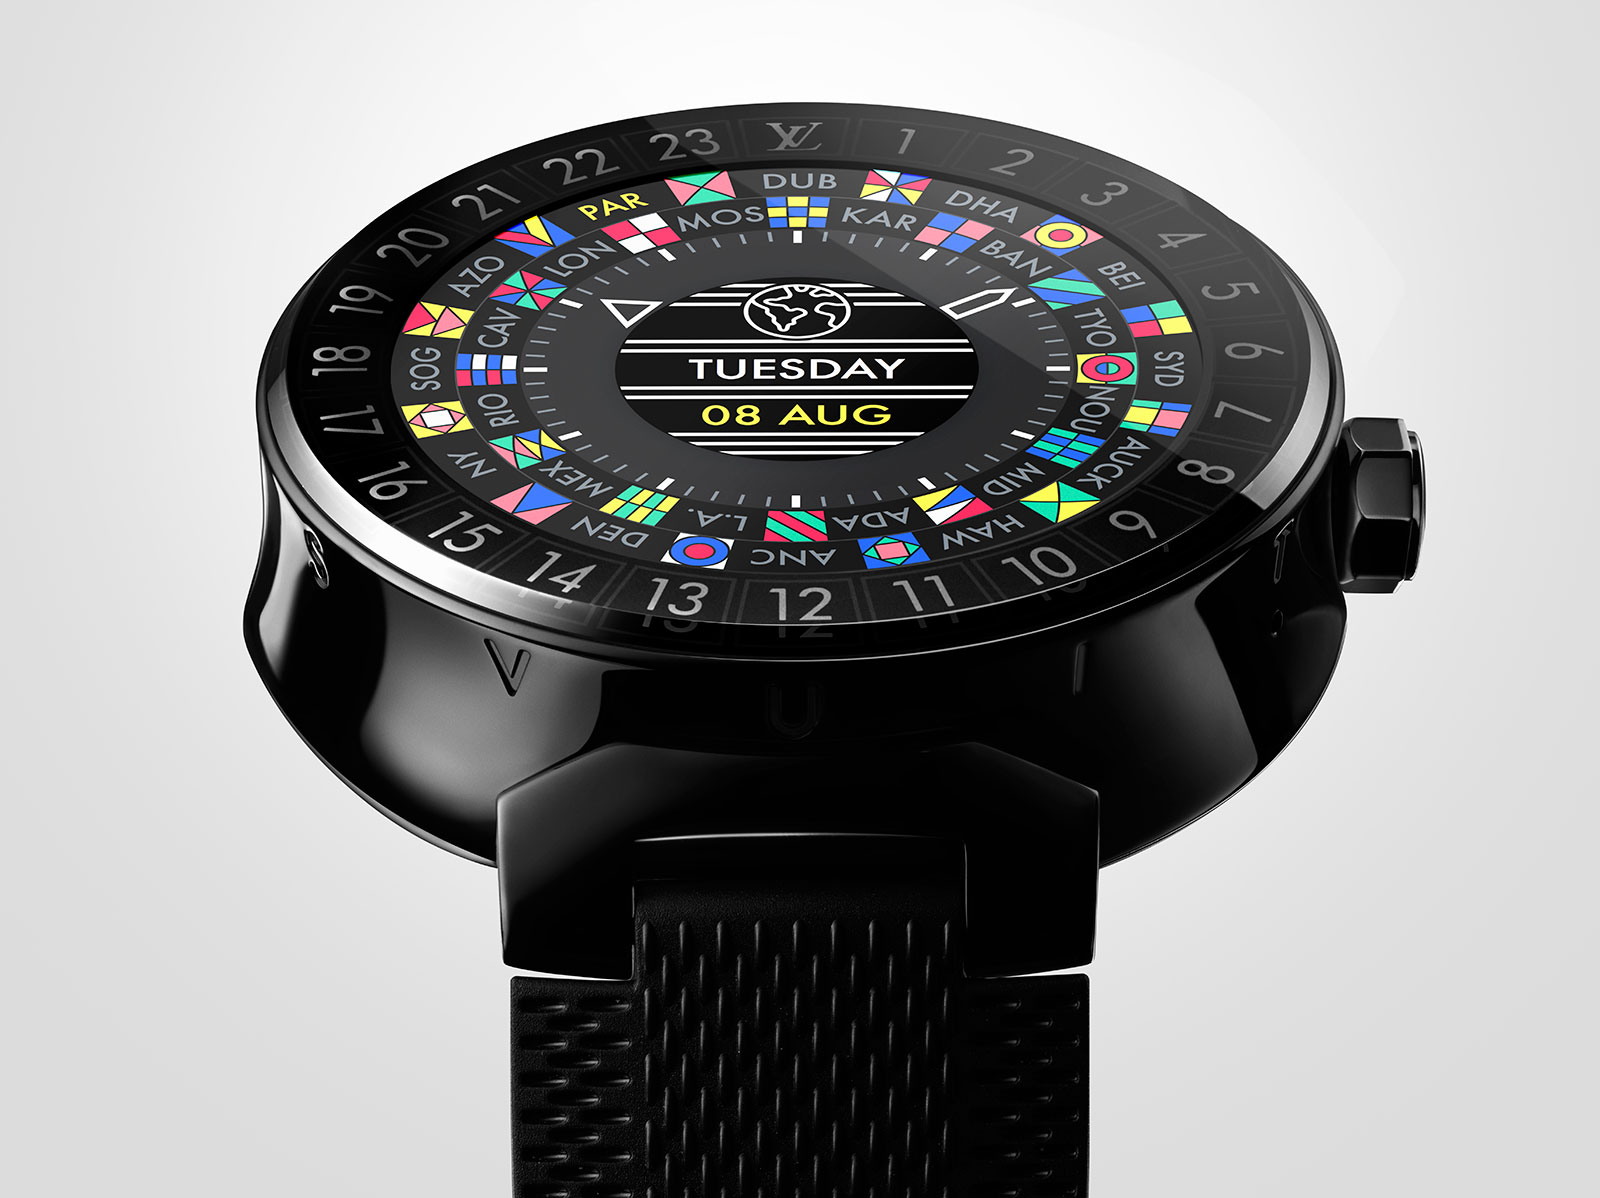 tambour horizon louis introduces watches vuitton the smartwatch sjx